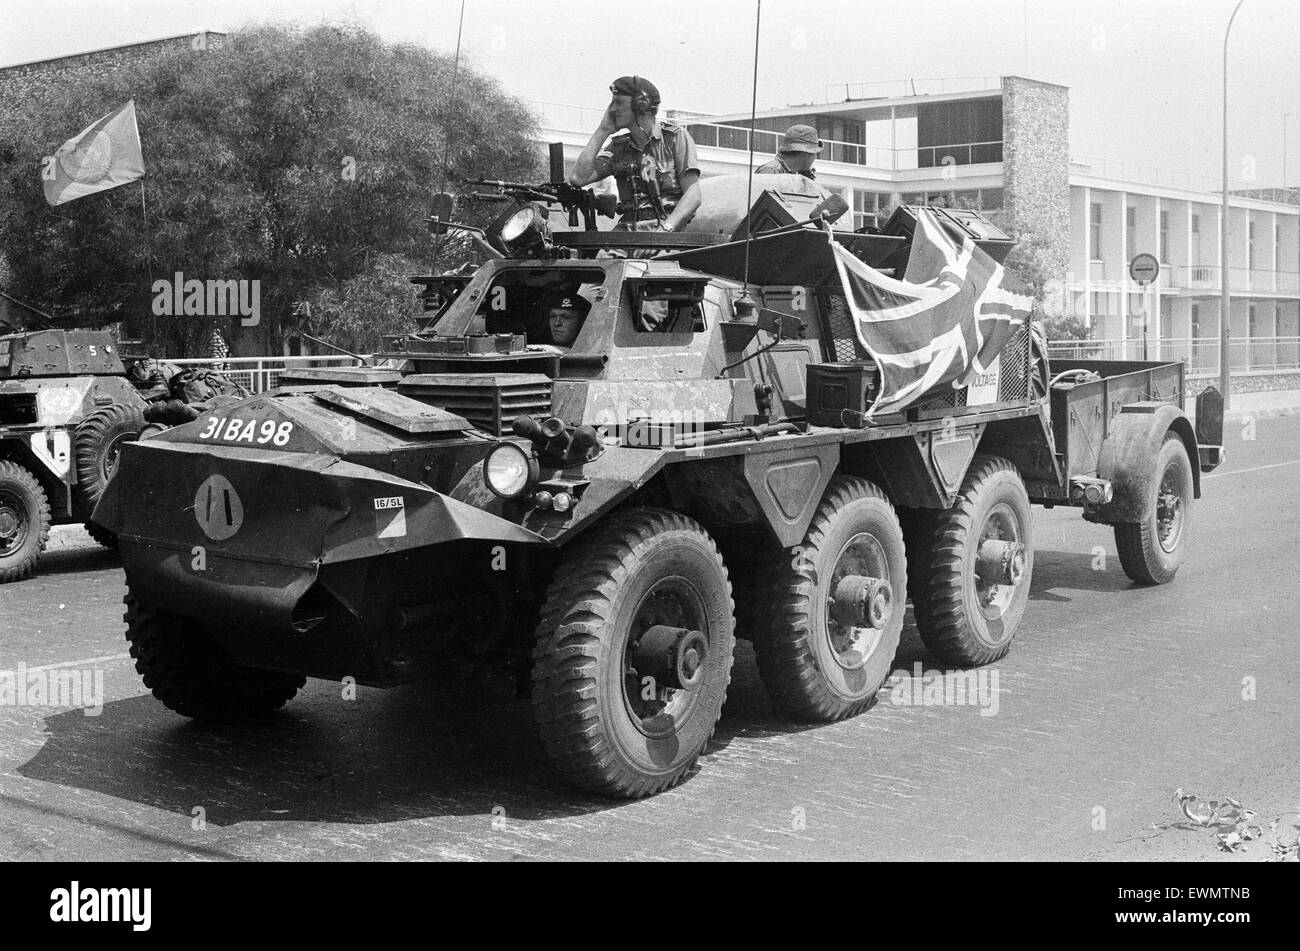 The Turkish invasion of Cyprus. A British armoured car, draped with the Union Jack, helps to guard a refugee convoy - Stock Image